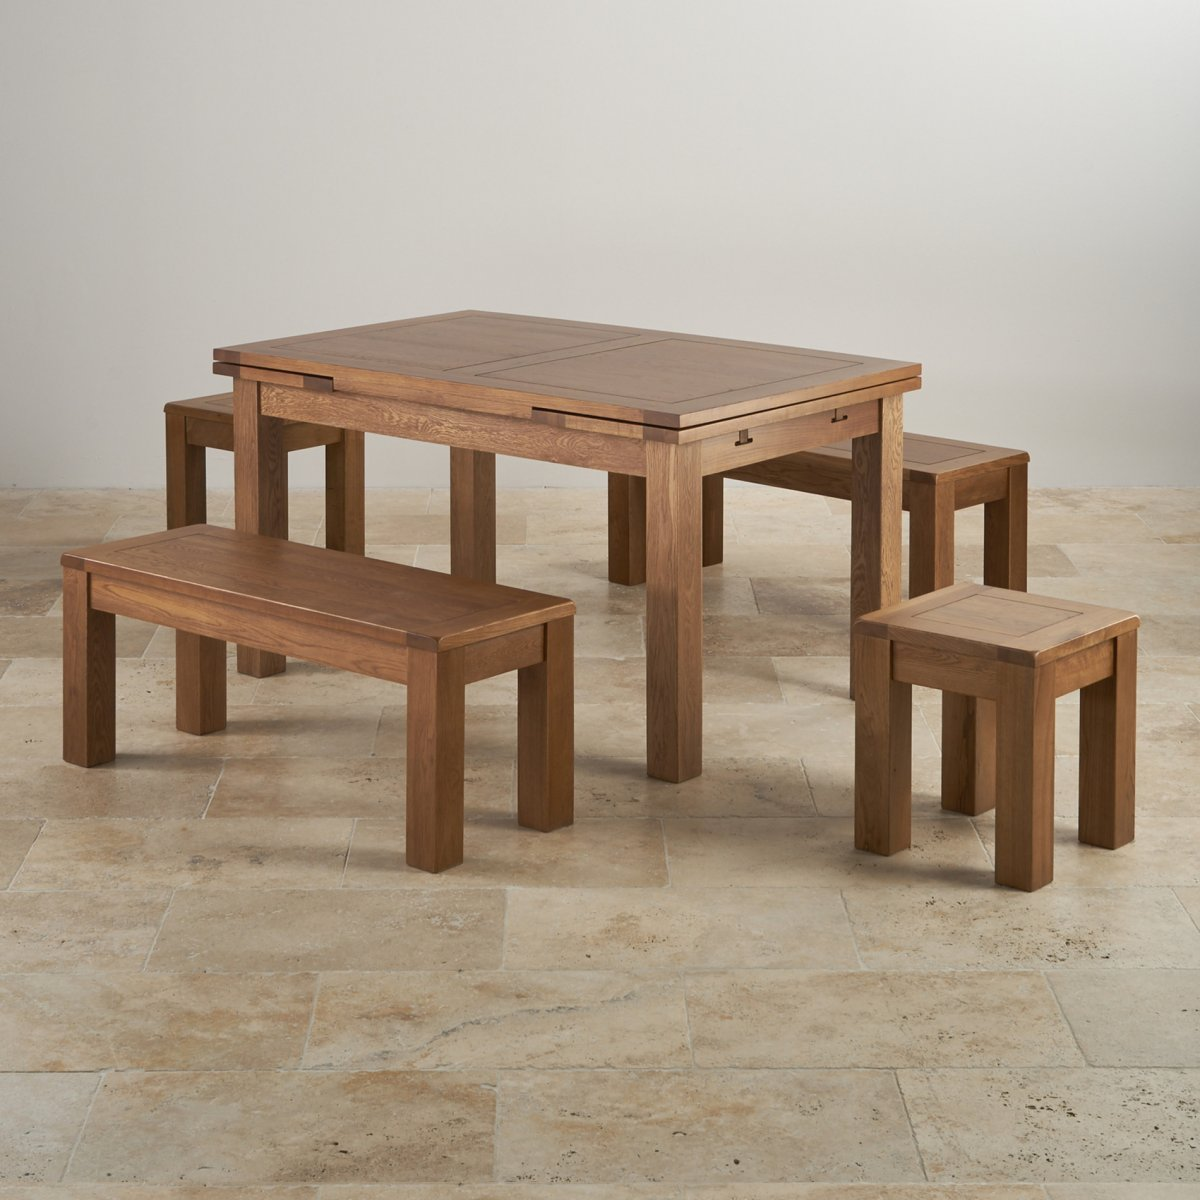 7 PC VANCOUVER OVAL DINETTE KITCHEN DINING TABLE